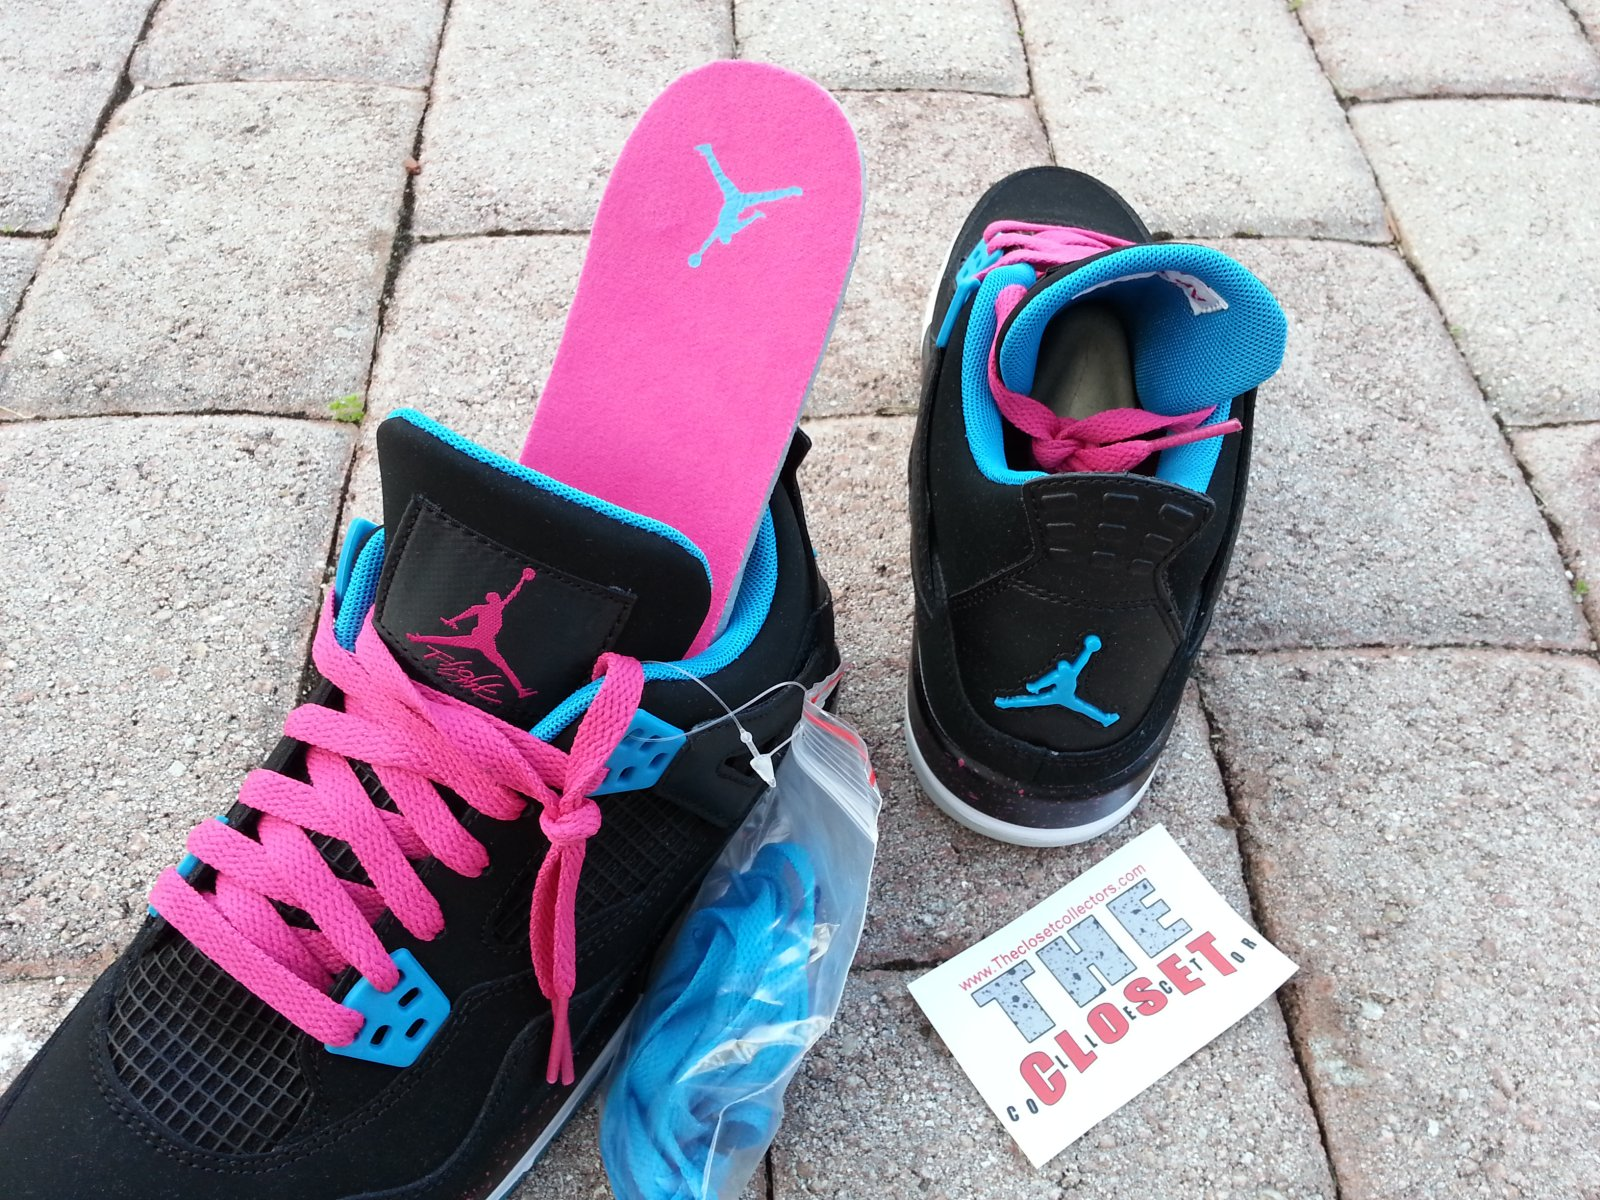 513fe4946ee Air Jordan 4 (IV) Retro GS Color: Black-Dynamic Blue-Vivid Pink-White  Style: 487724-019. Release: 11/17/2012. Price: $110.00?